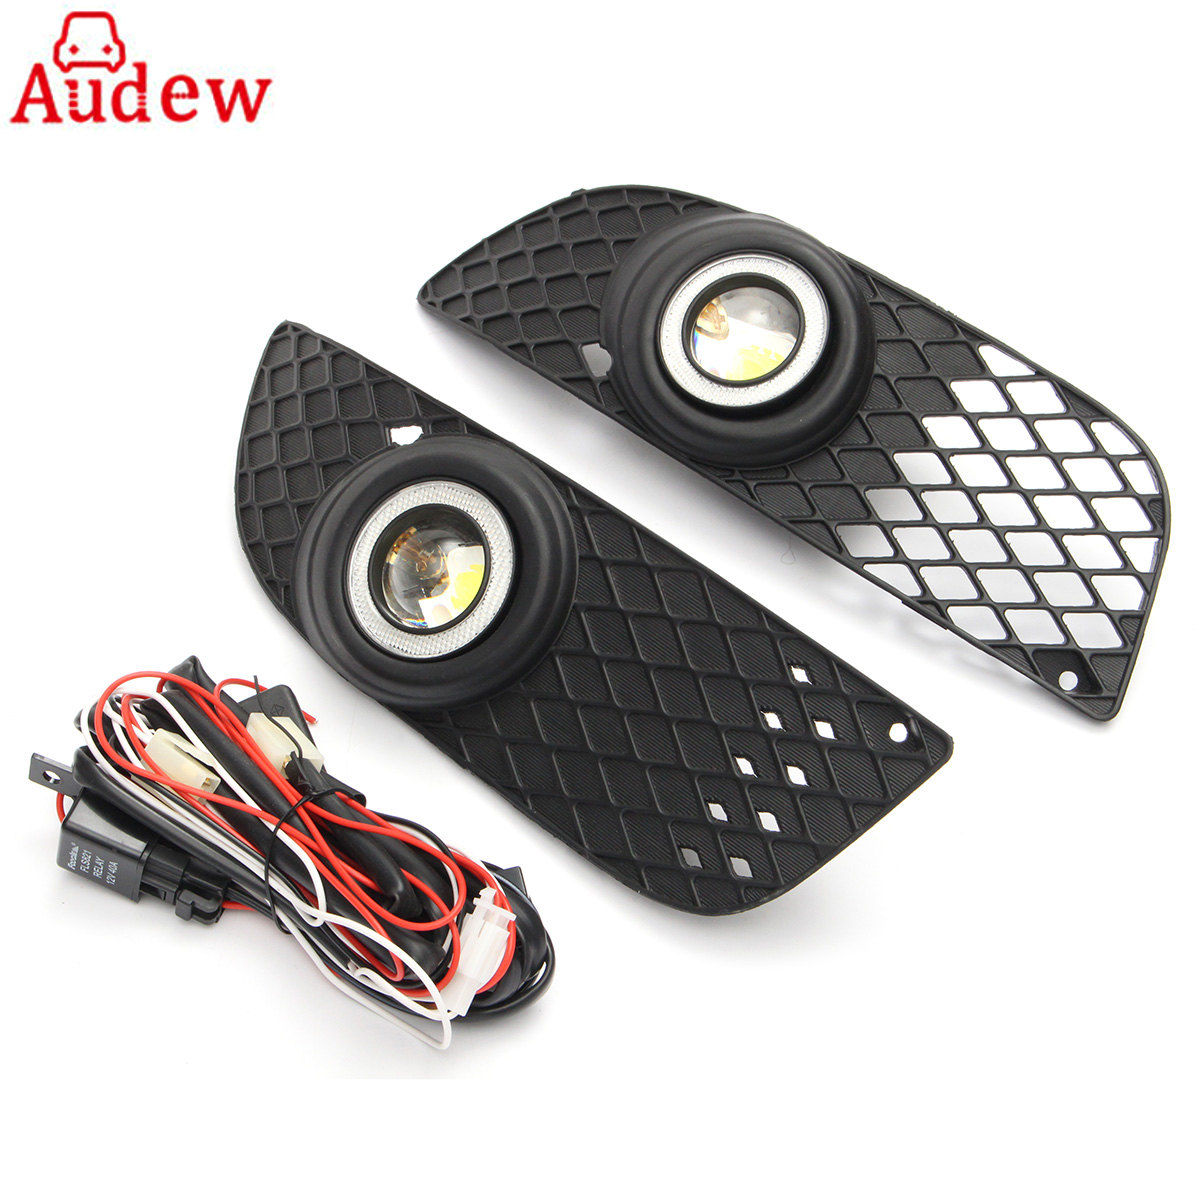 2Pcs Car Styling H3 Fog Lamp Fog Light Angel Eyes DRL Daytime Running Light  For Mitsubishi Lancer 2008-2014 fog lights for mitsubishi pajero sport 2008 2015 1 set 2 pcs car accessories styling car decoration automotive front light